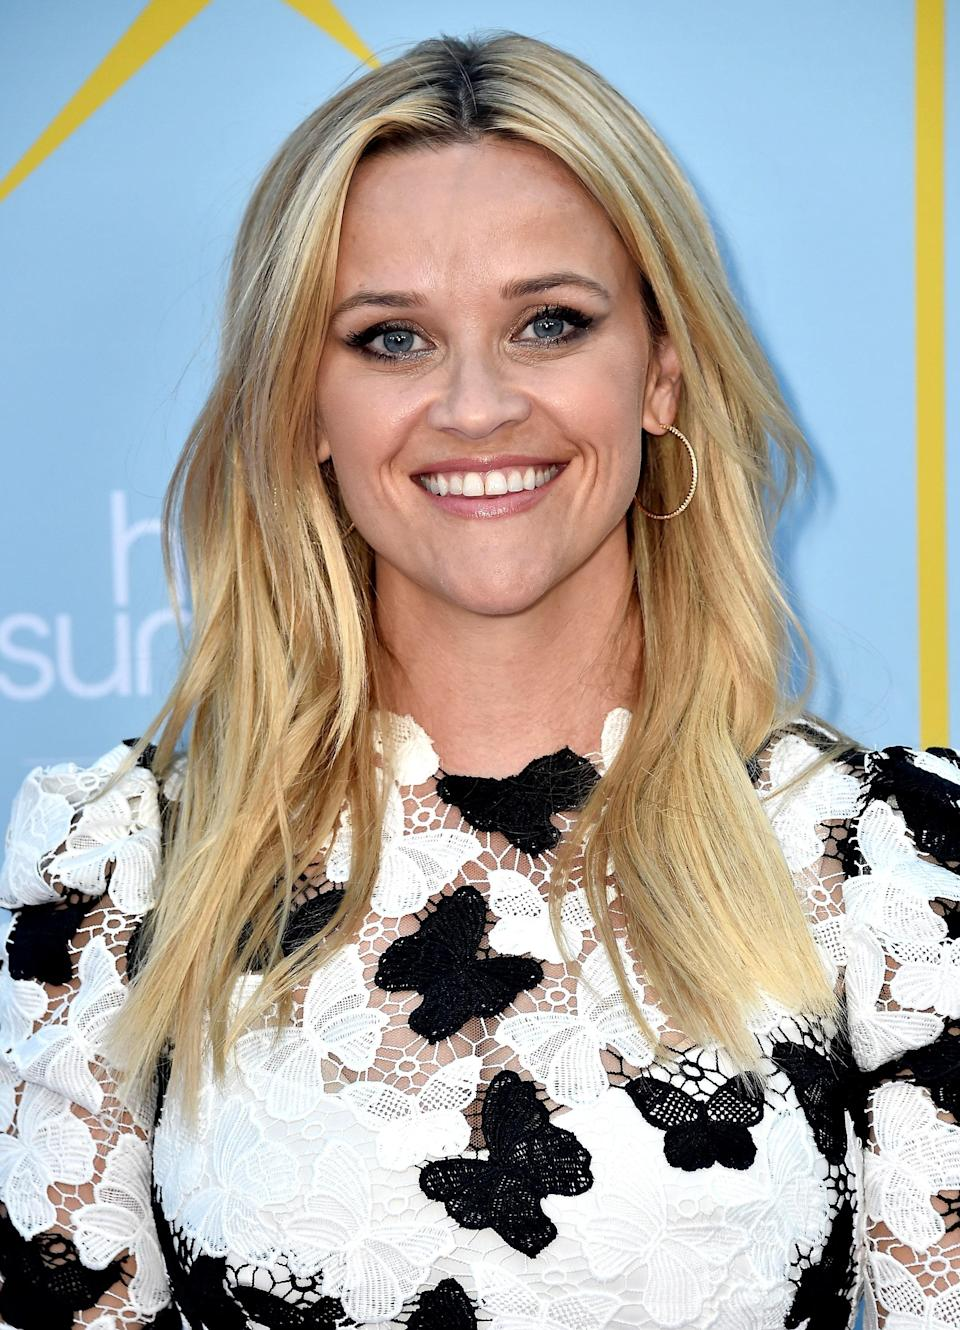 Reese Witherspoon's iconic blond is bright without looking fake, as if she spent a day in the sun. The darkness at the roots gives it a more believable look.